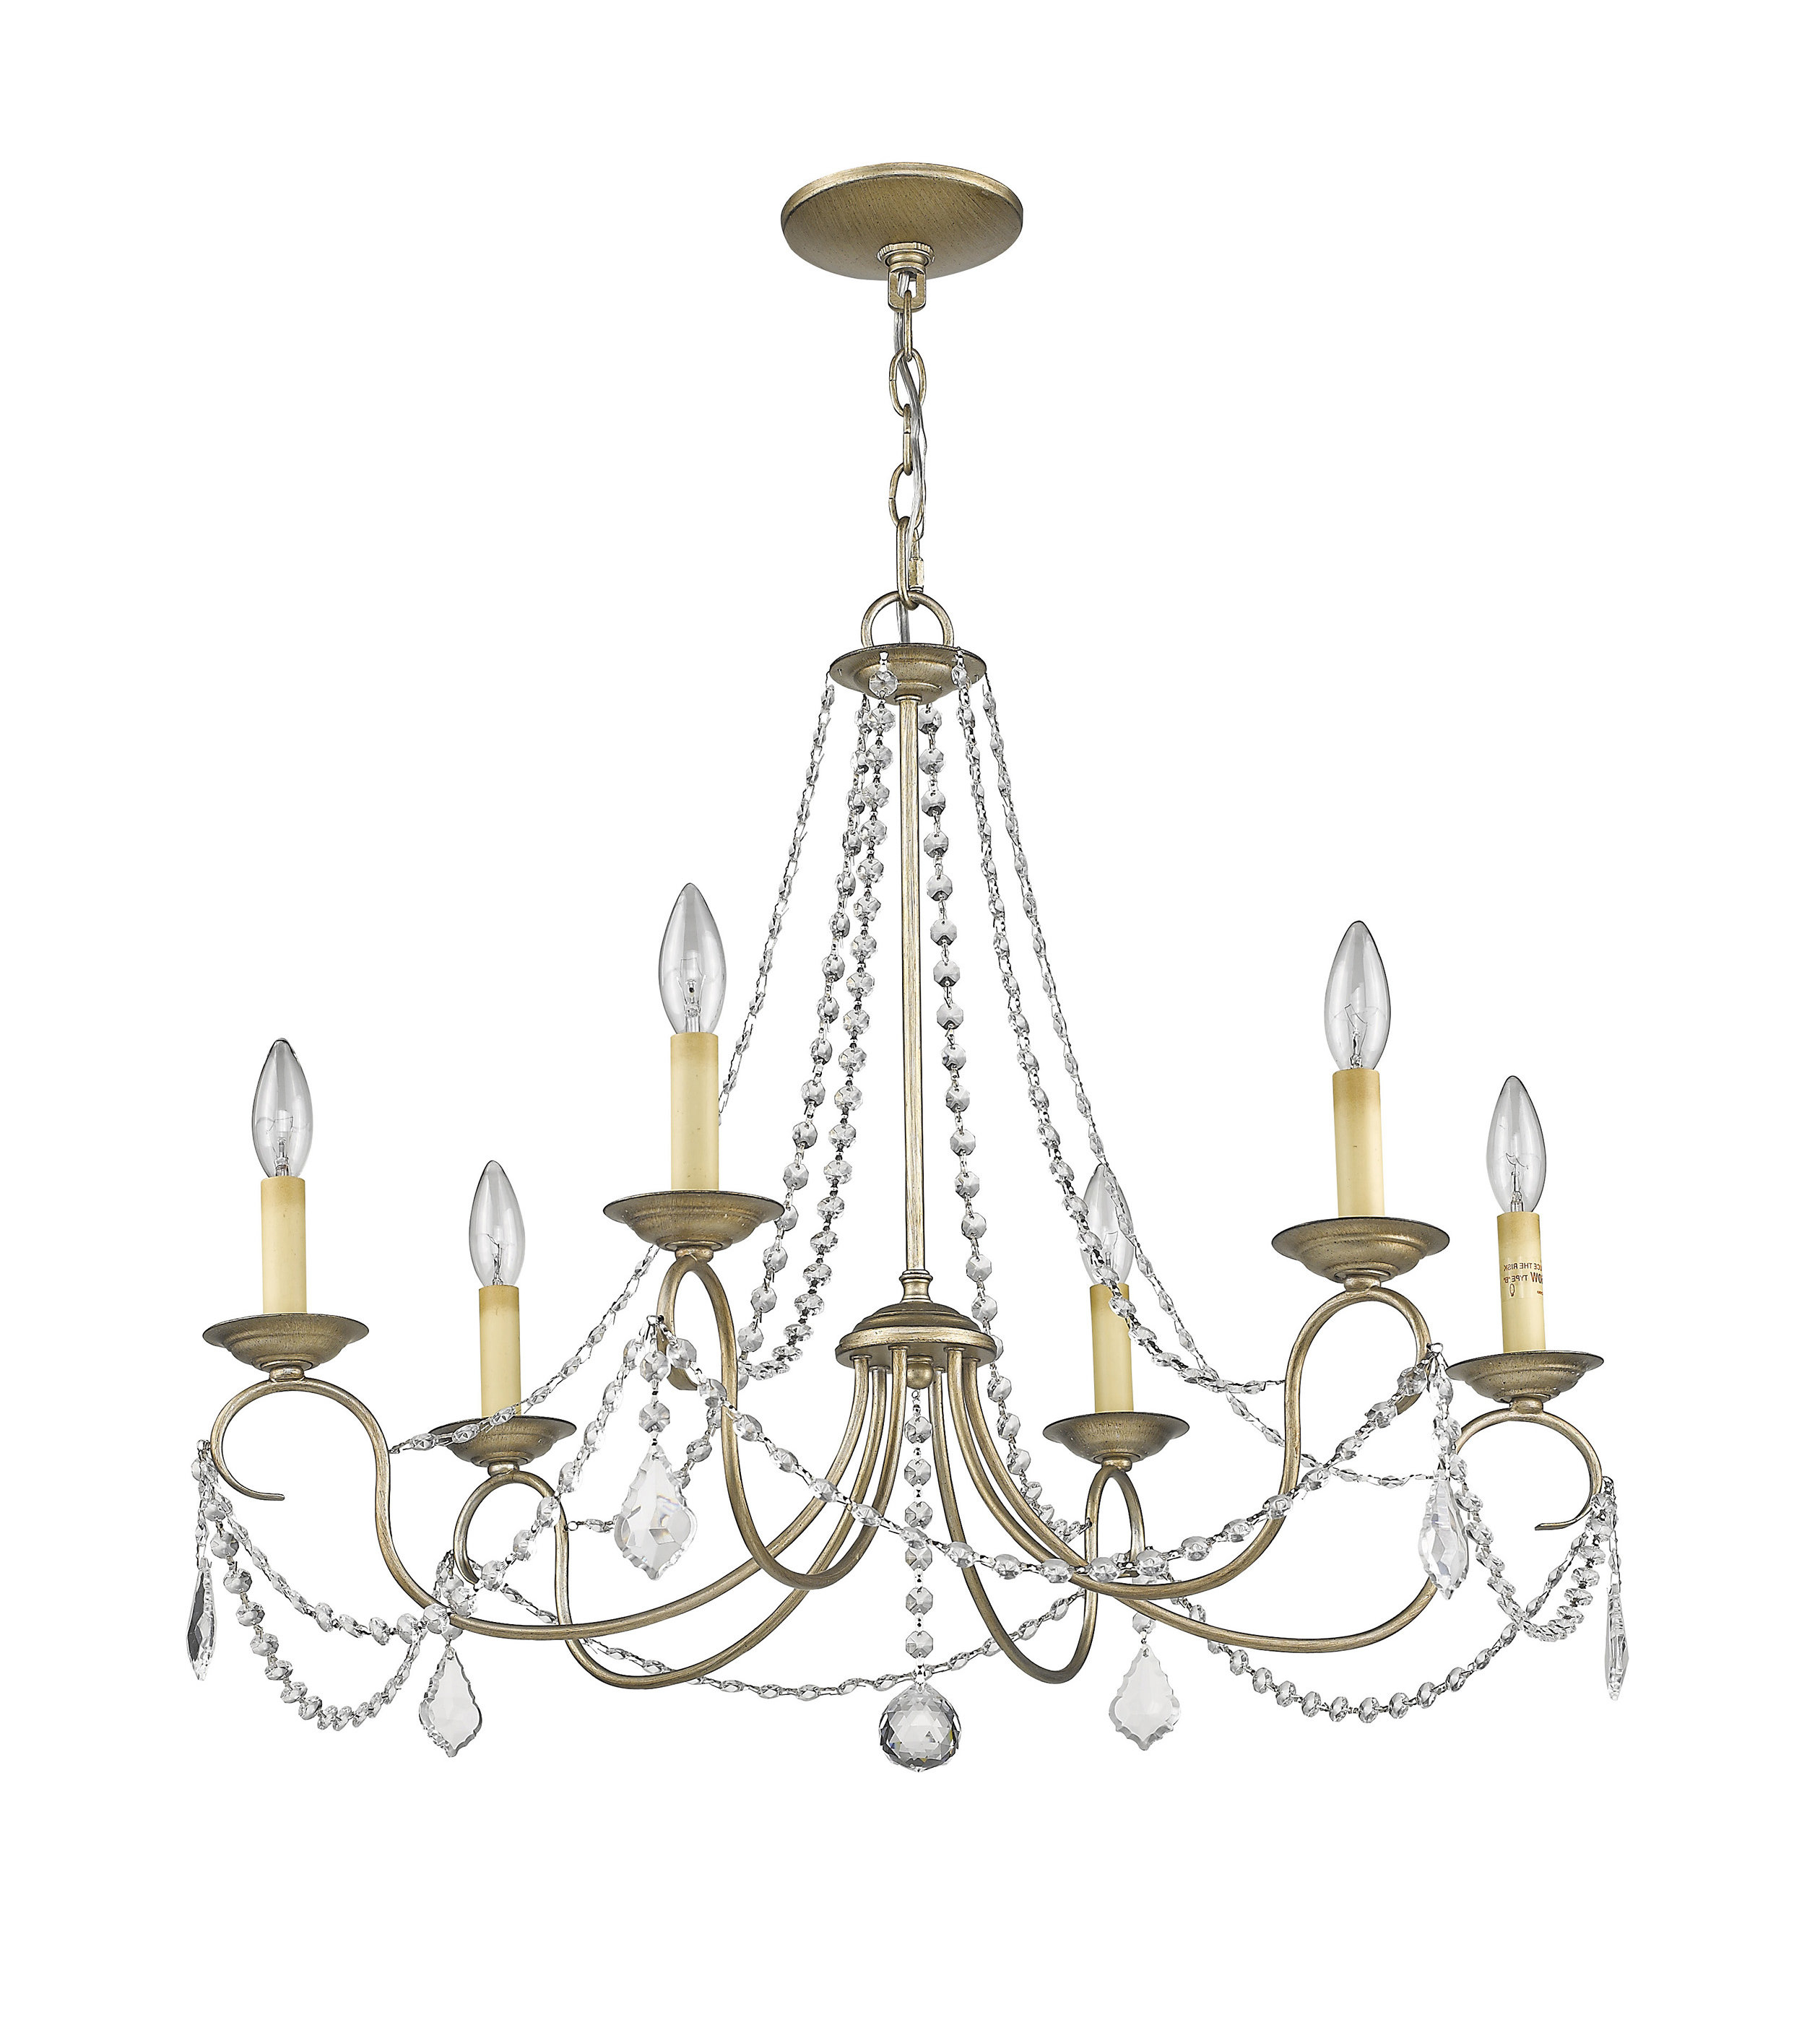 2019 Devana 6 Light Candle Style Chandelier With Regard To Diaz 6 Light Candle Style Chandeliers (View 4 of 25)